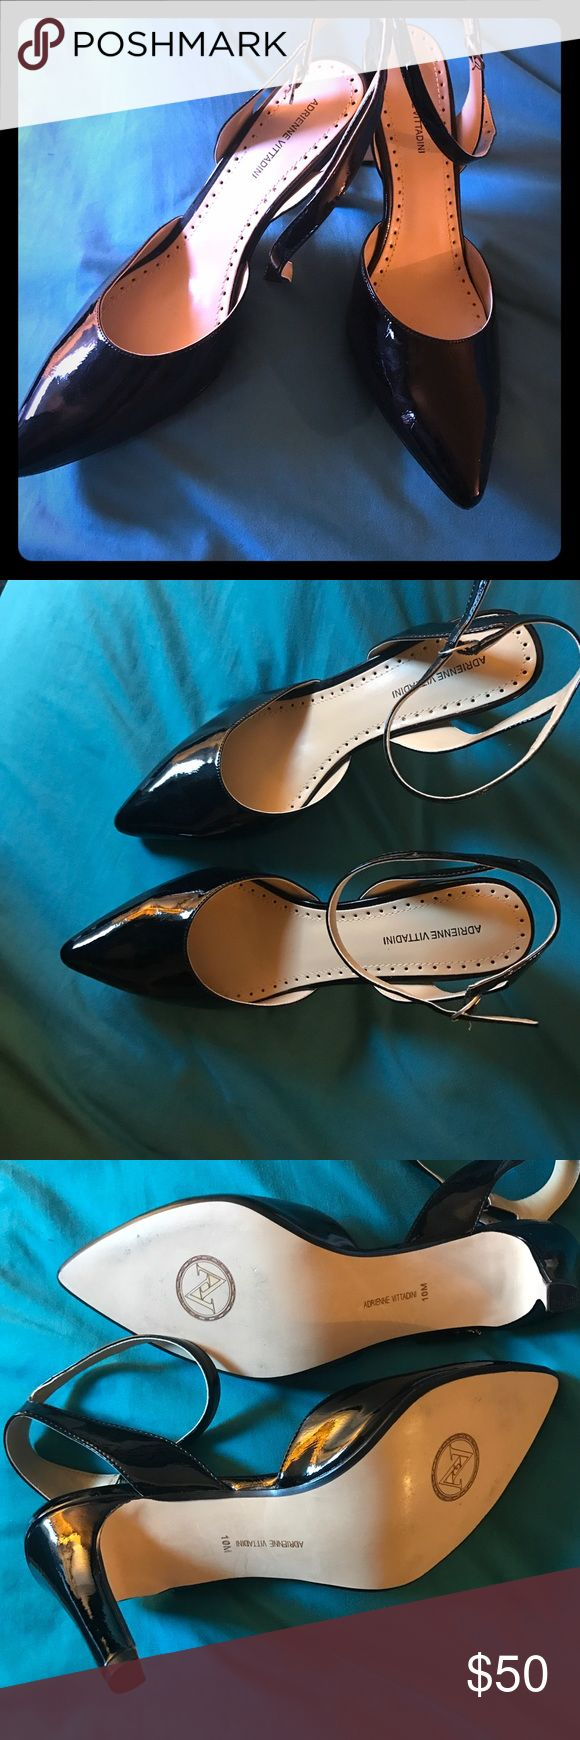 Adrienne Vittadini black patent leather pumps Black patent leather Adrienne Vittadini pumps. Tried them on and walked outside in my patio, once. 😁 they're in excellent condition. Purchased brand new from Macy's! Gorgeous and stylish! Adrienne Vittadini Shoes Heels